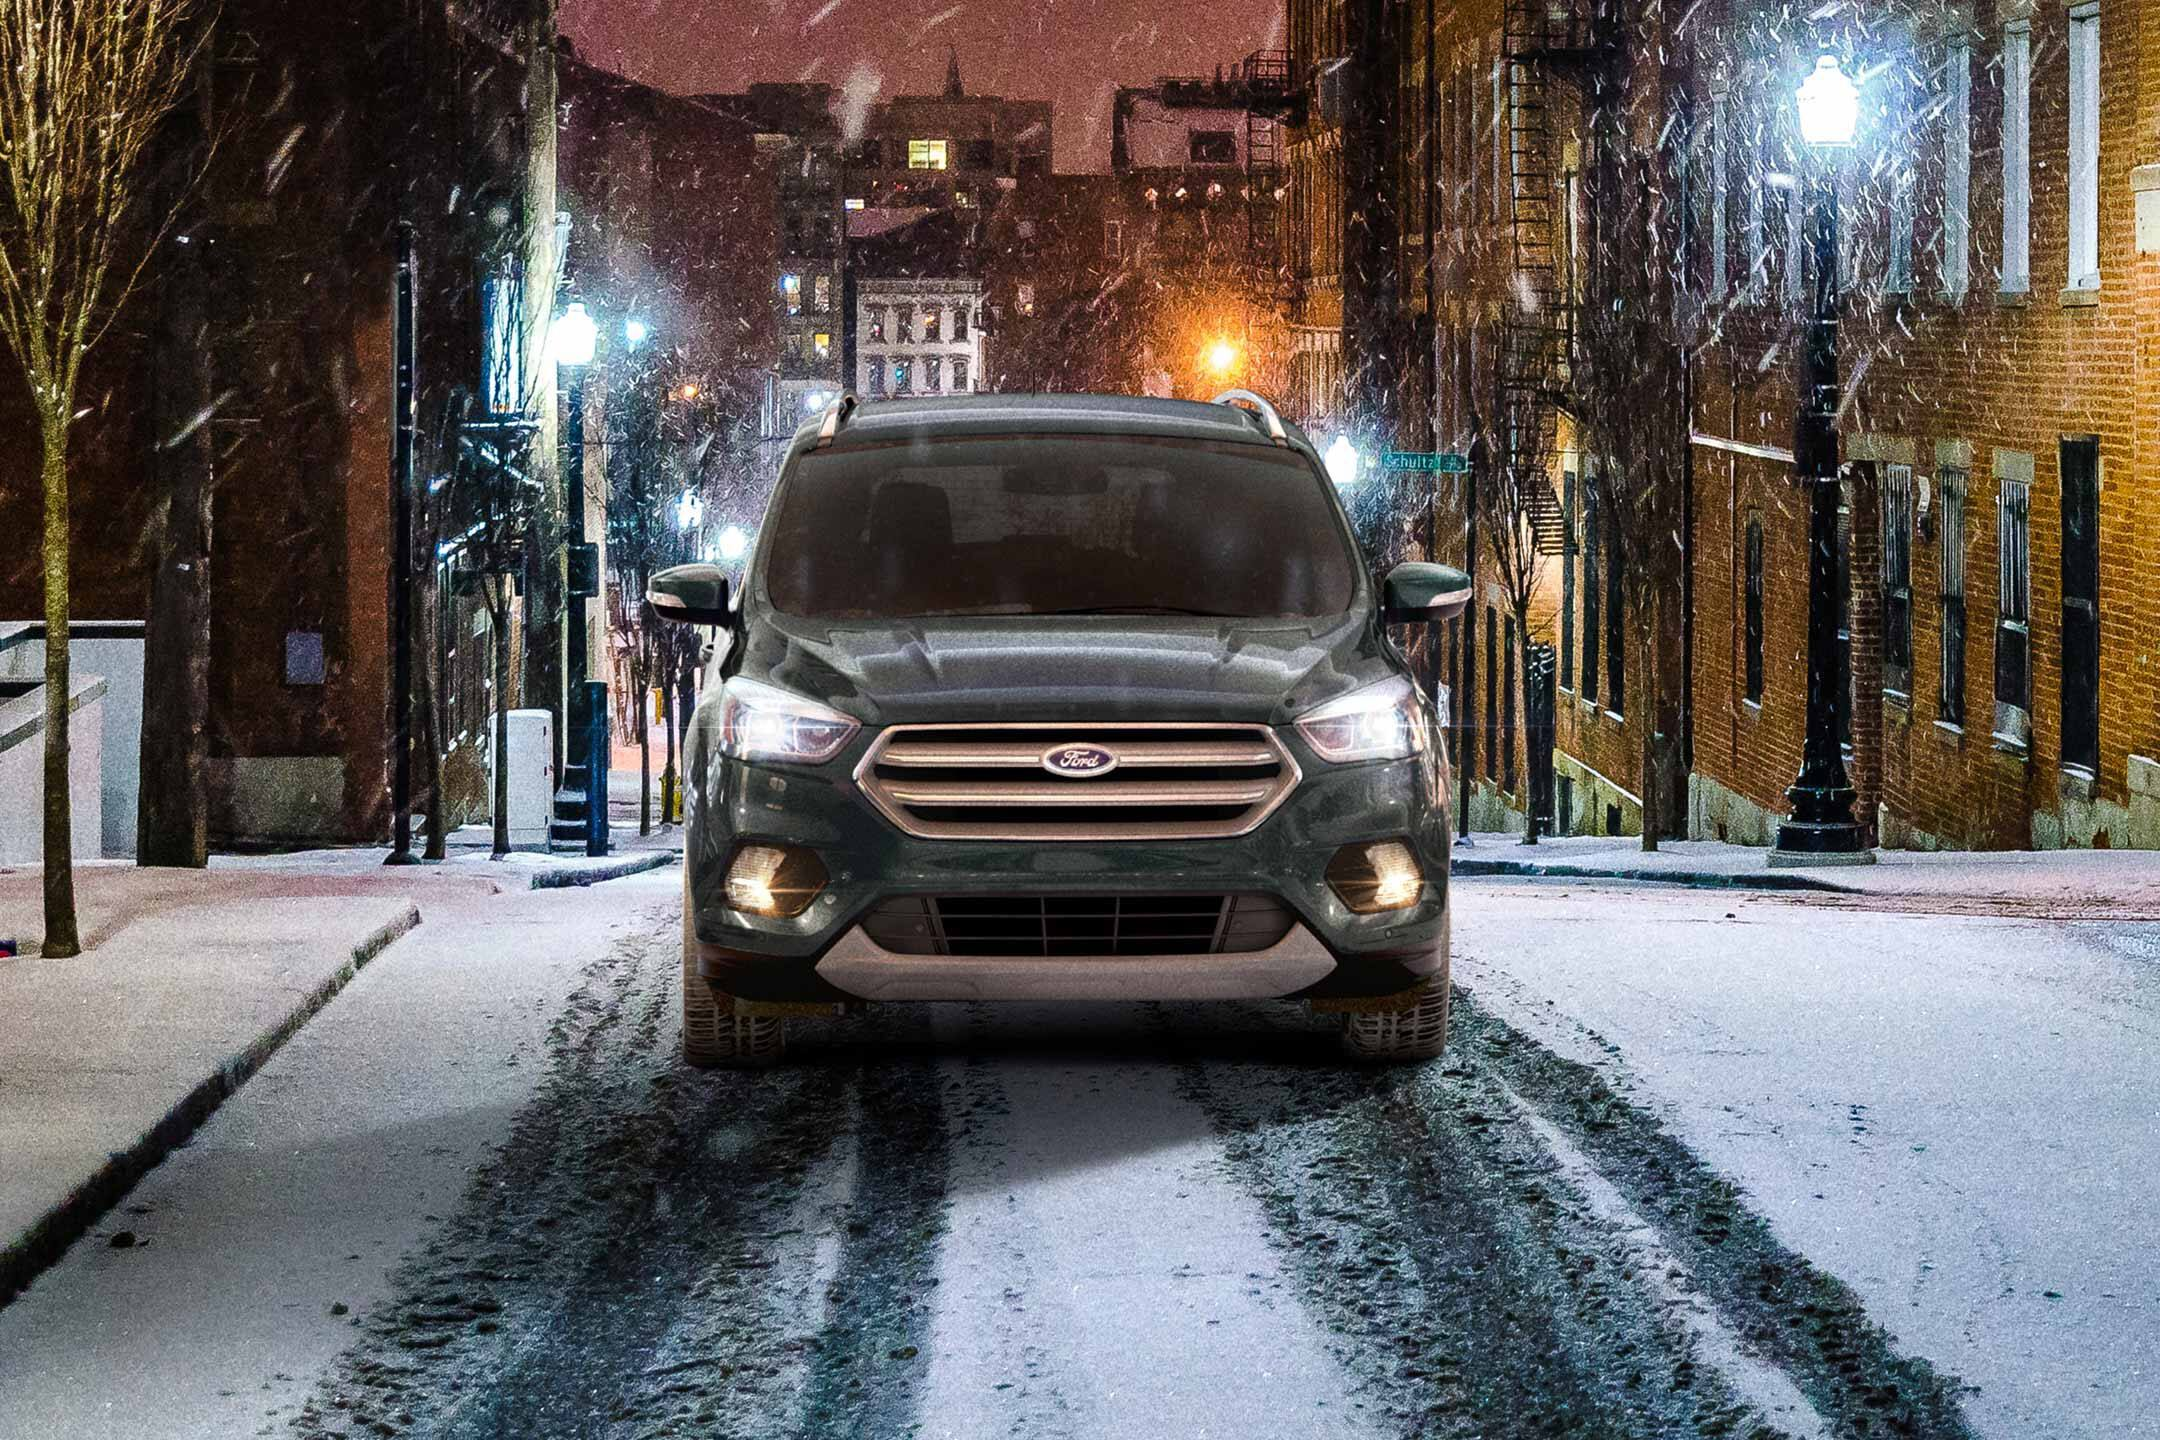 green 2019 ford escape driving on snowy streets in the city